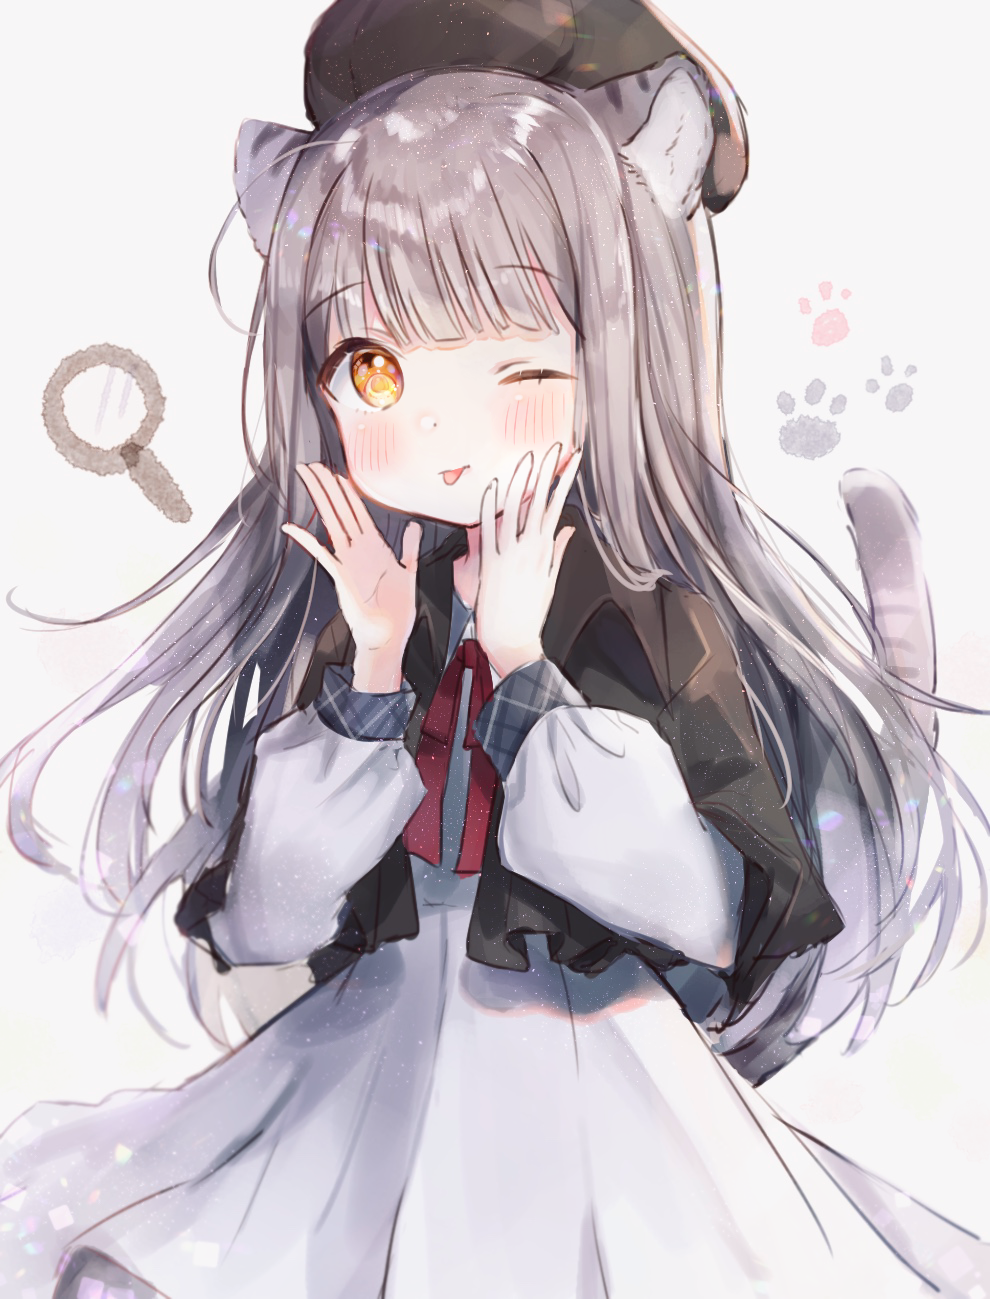 1girl ;p animal_ears beret capelet cat_ears cat_tail commentary_request dress hat highres long_hair long_sleeves looking_at_viewer magnifying_glass one_eye_closed orange_eyes original paw_background rukako silver_hair simple_background tail tongue tongue_out